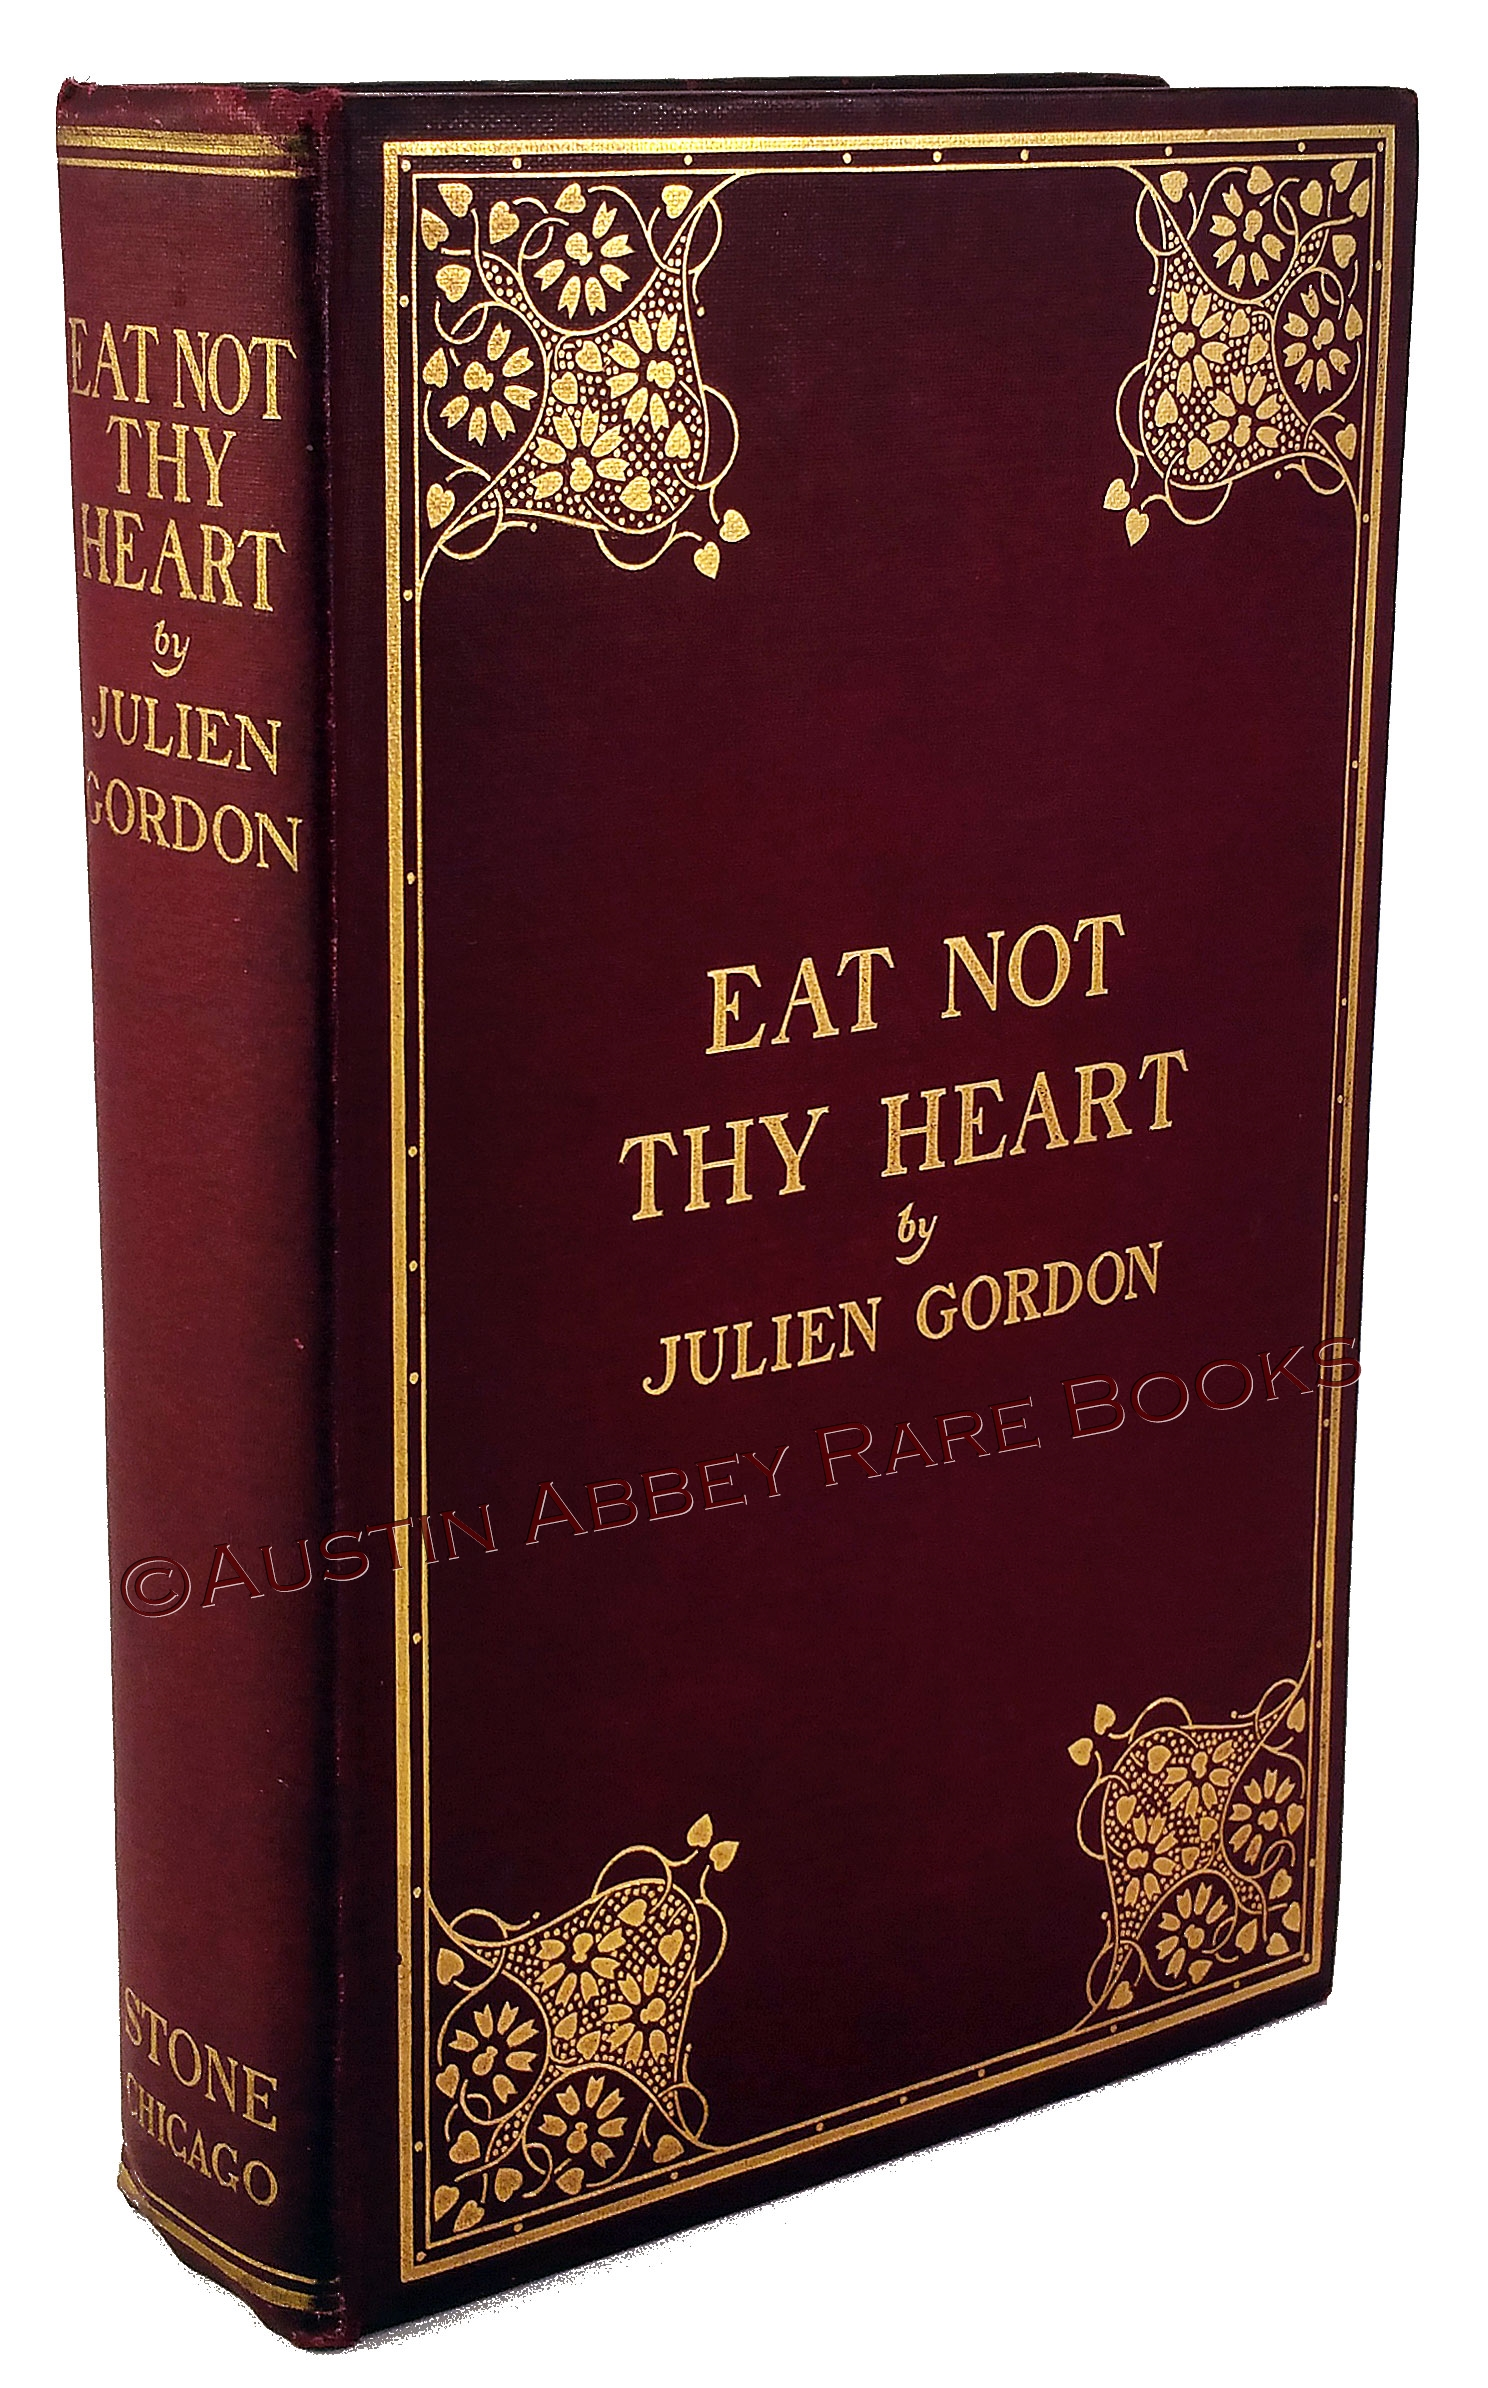 Image for EAT NOT THY HEART